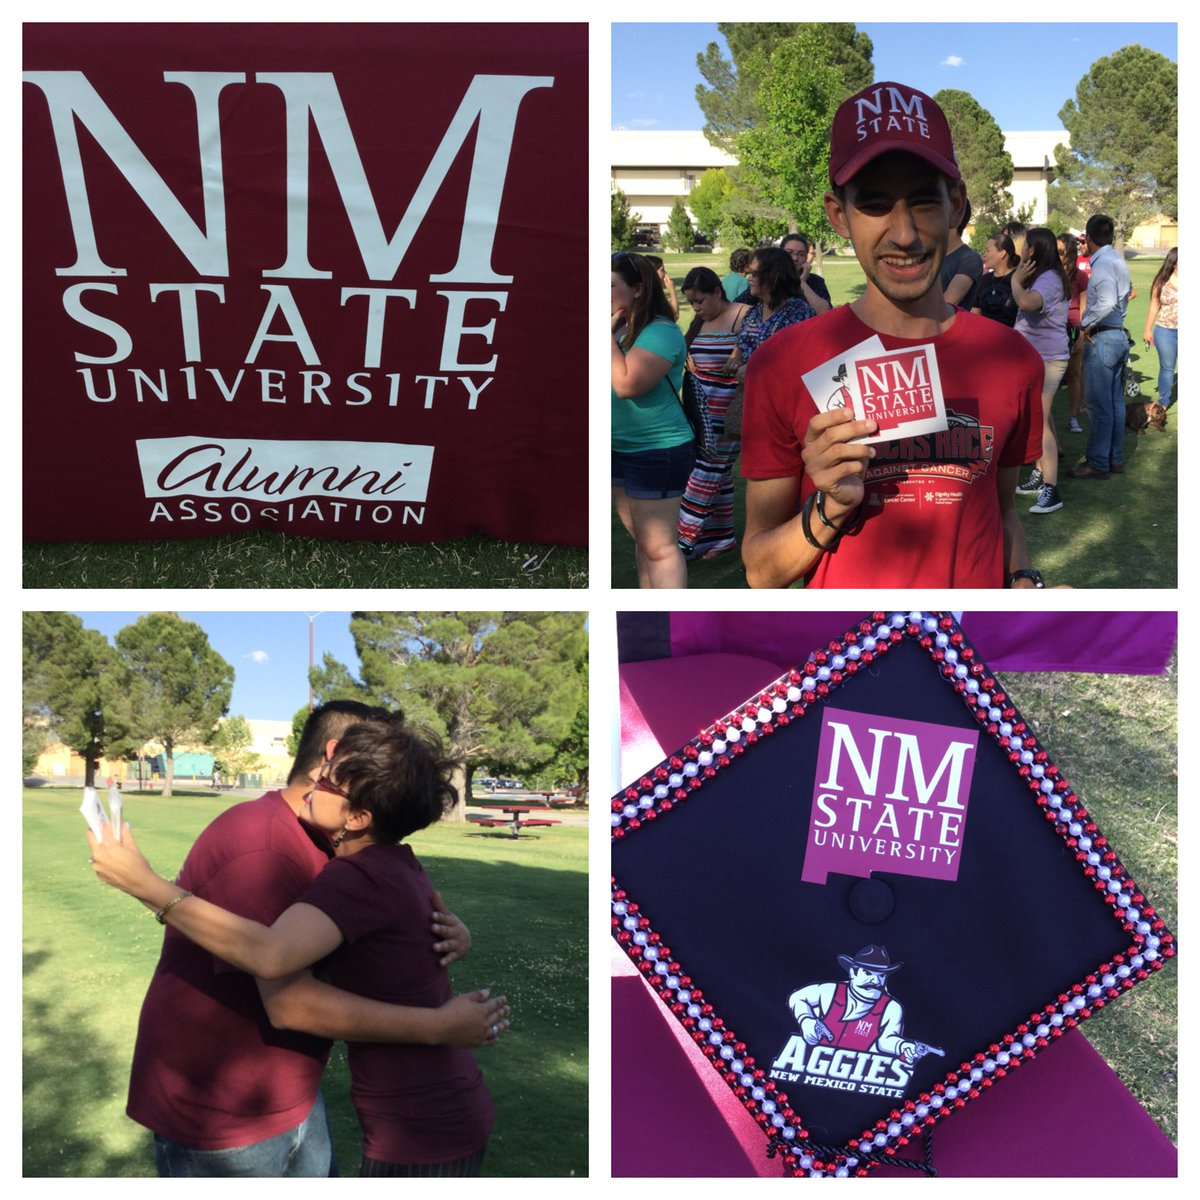 #NMSU Senior Walk. #supportnmsu #Aggies #GoAggies #nmsugrad #nmsucapcontest https://t.co/p92iQHxGBH